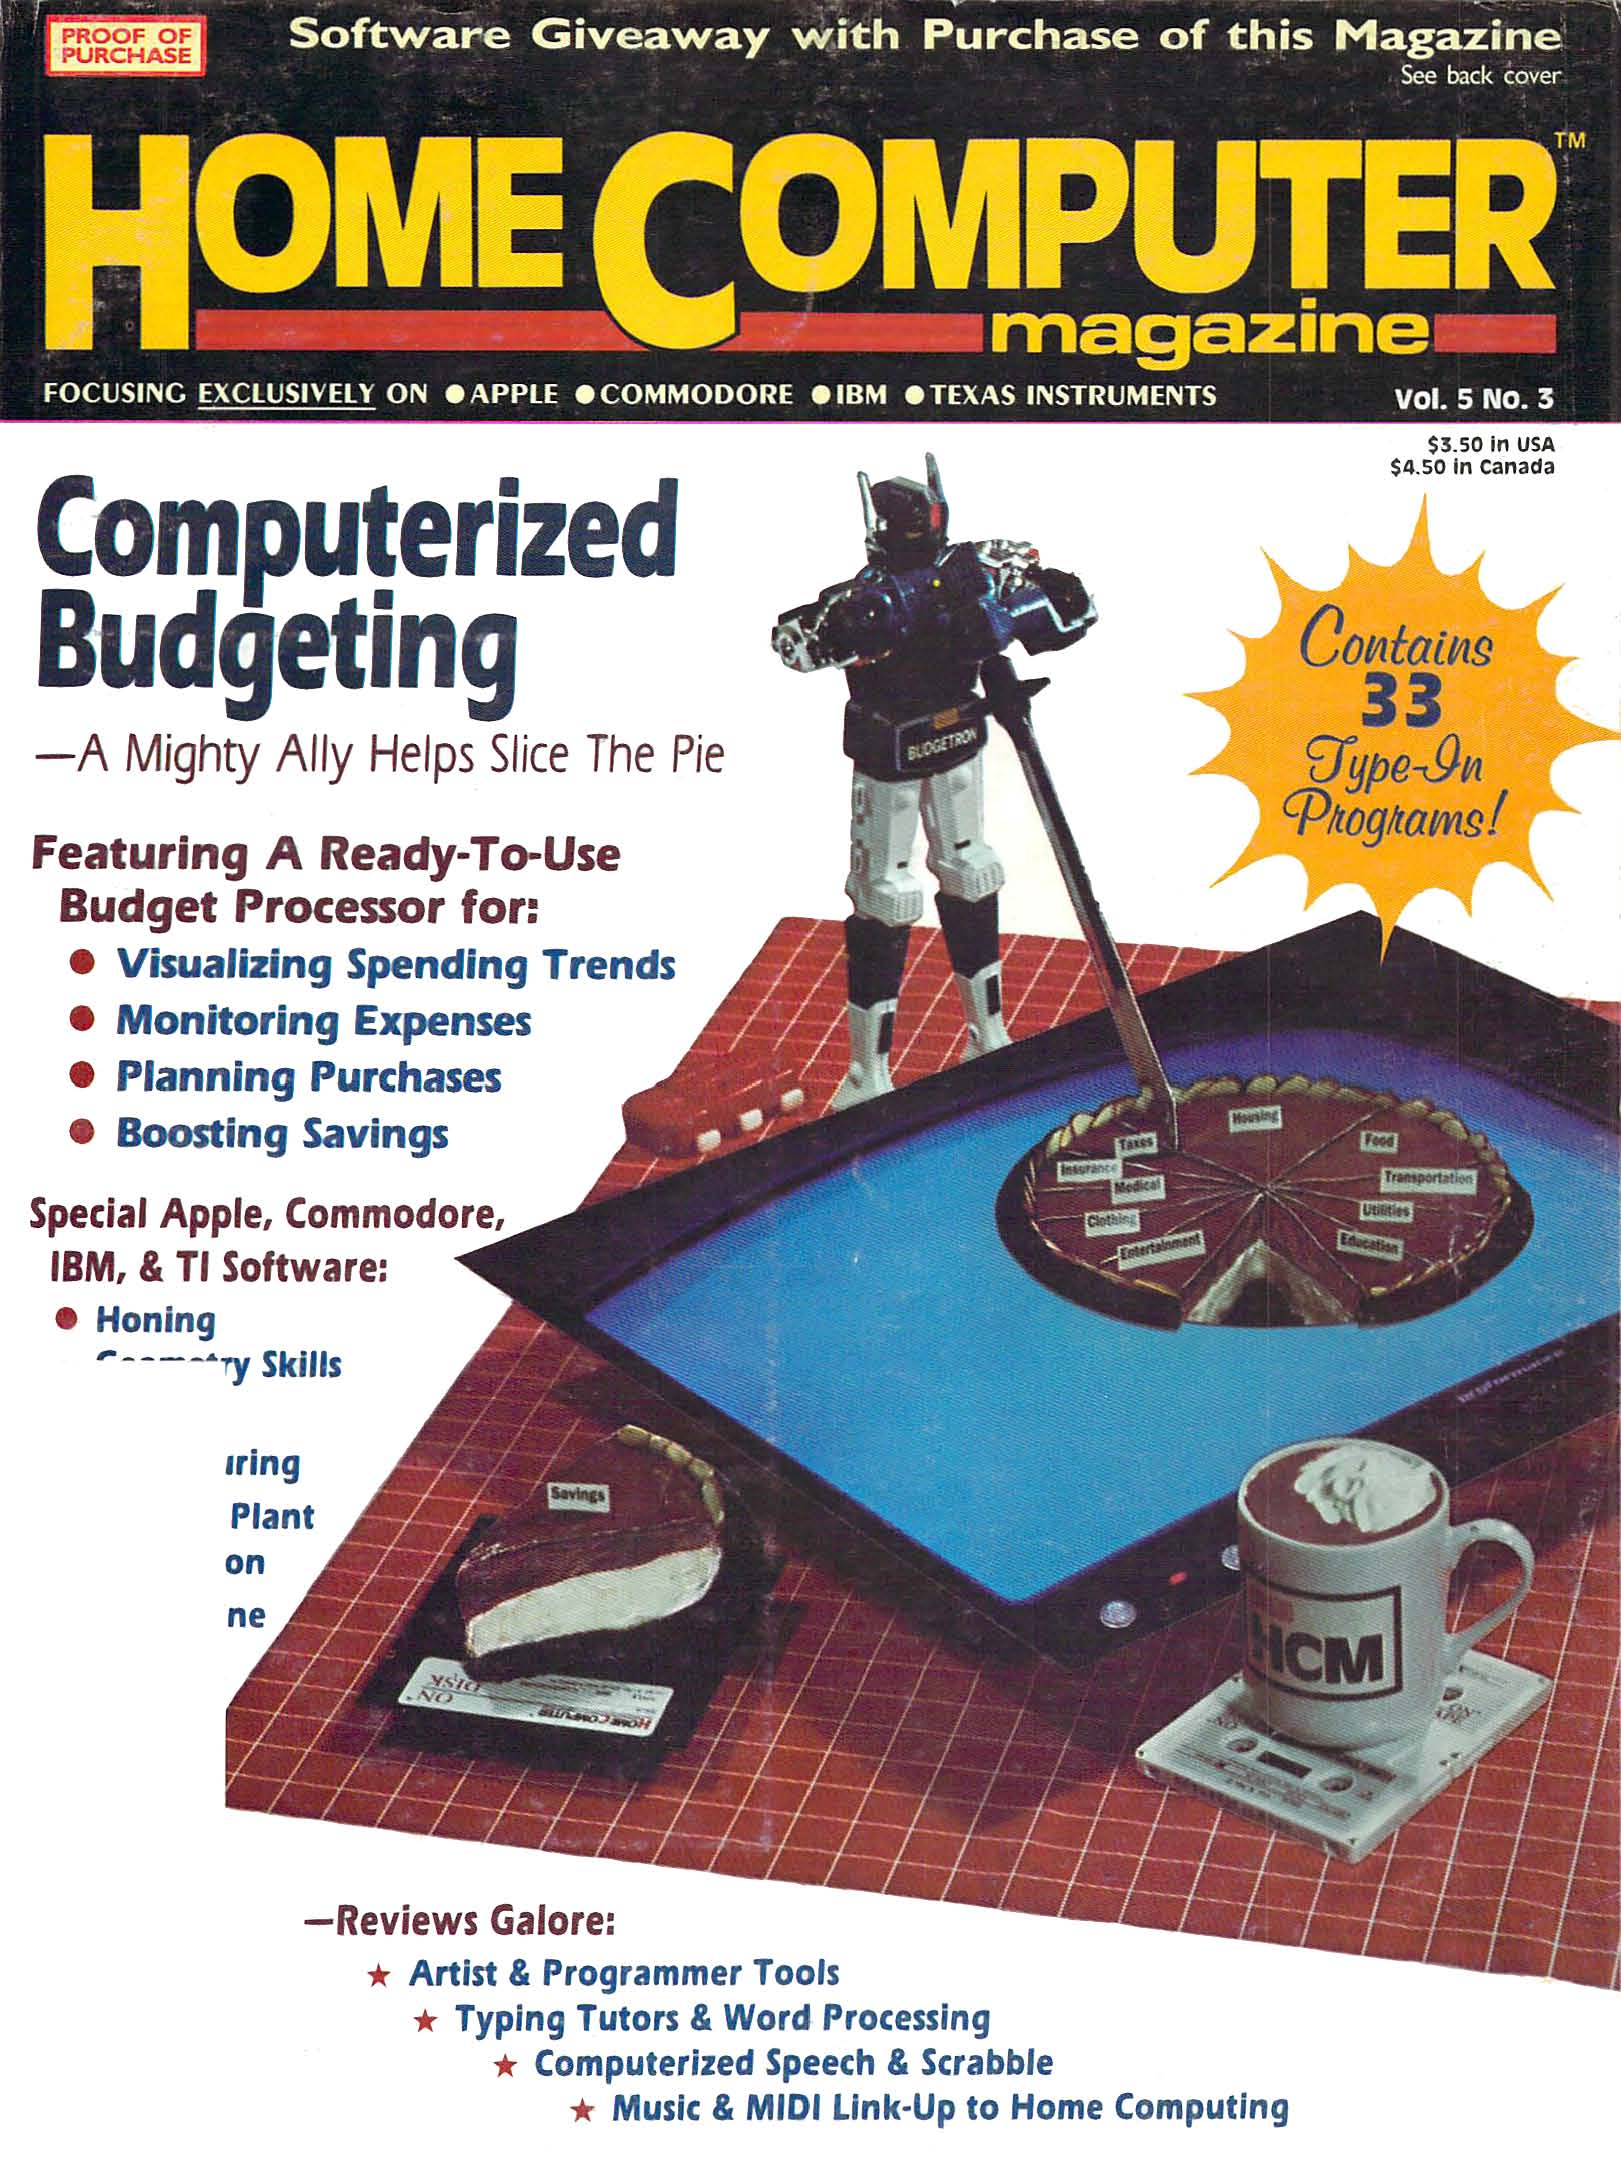 home_computer_magazine_vol5_03-001